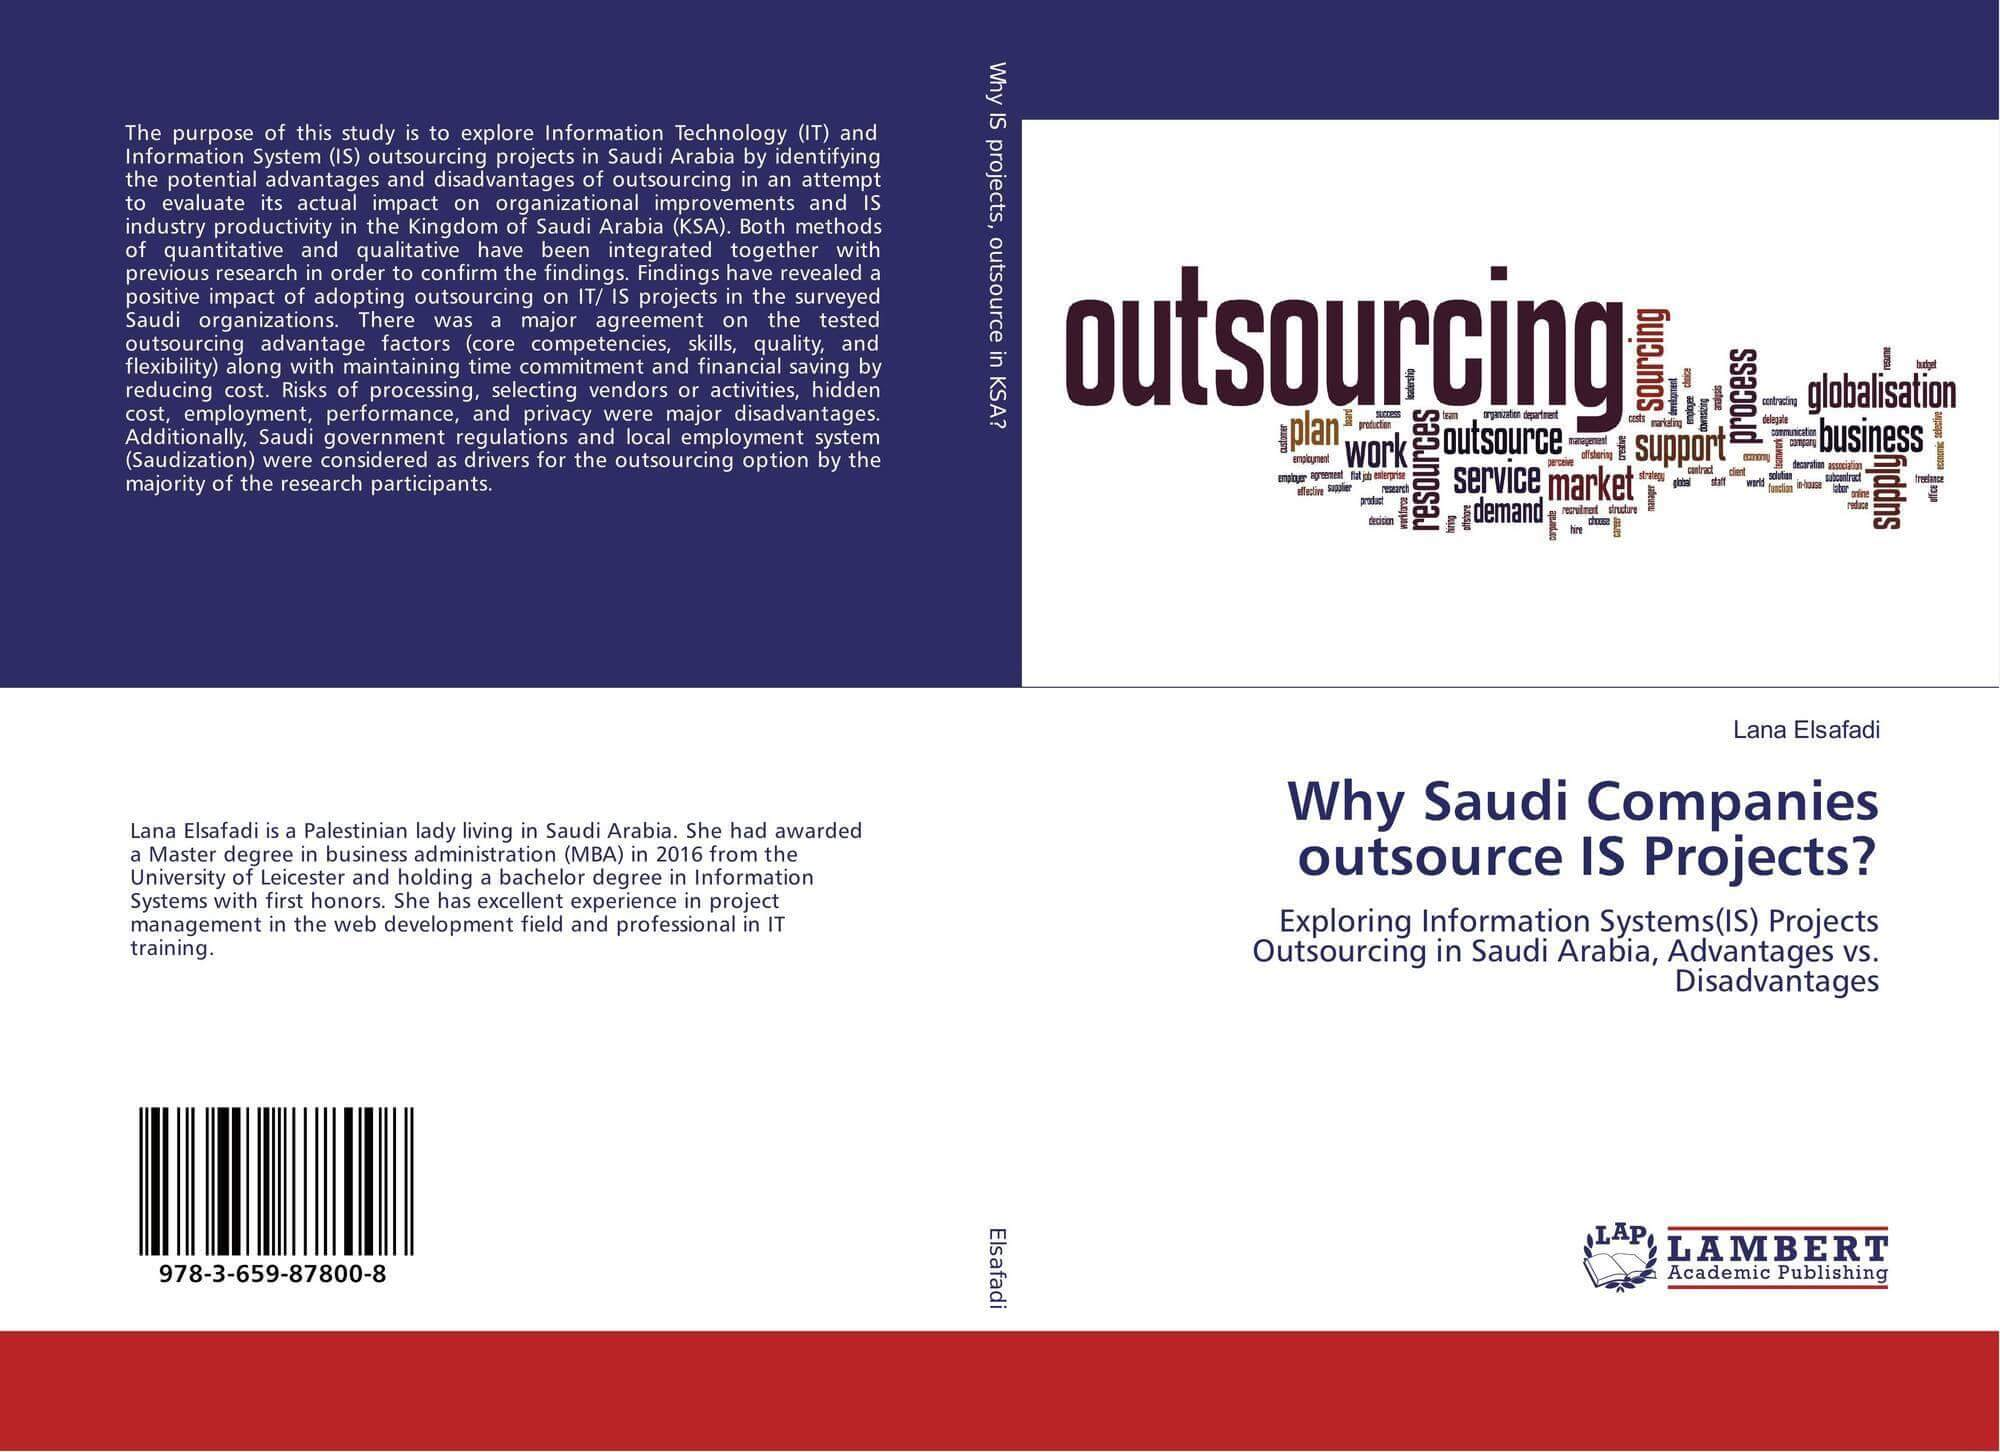 My Book: Why Saudi Companies Outsource IS Projects?